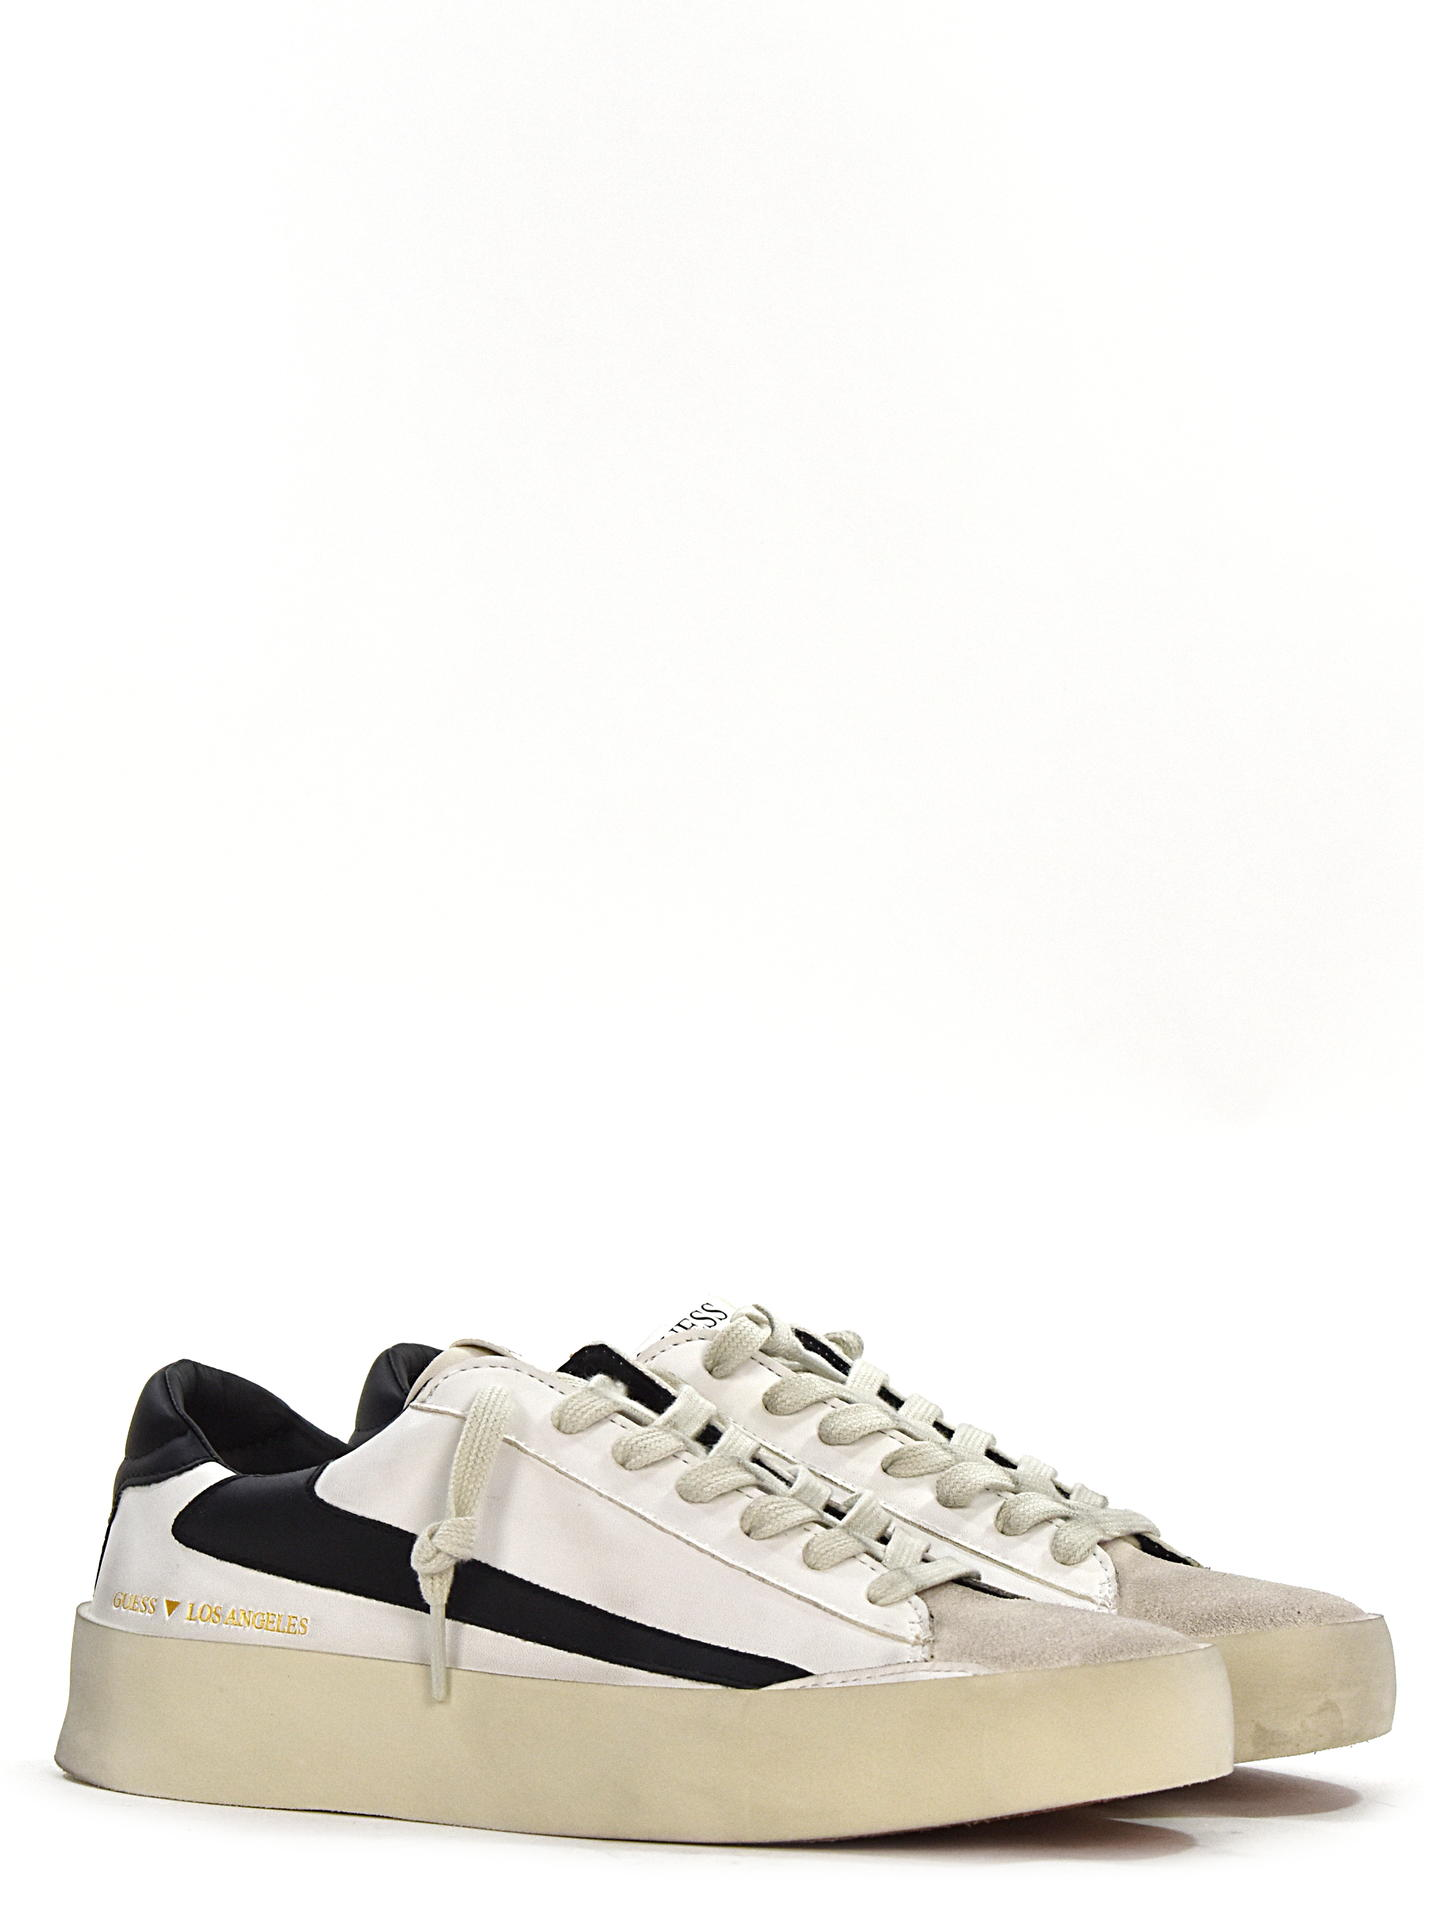 SNEAKERS GUESS FIR BIANCO/NERO